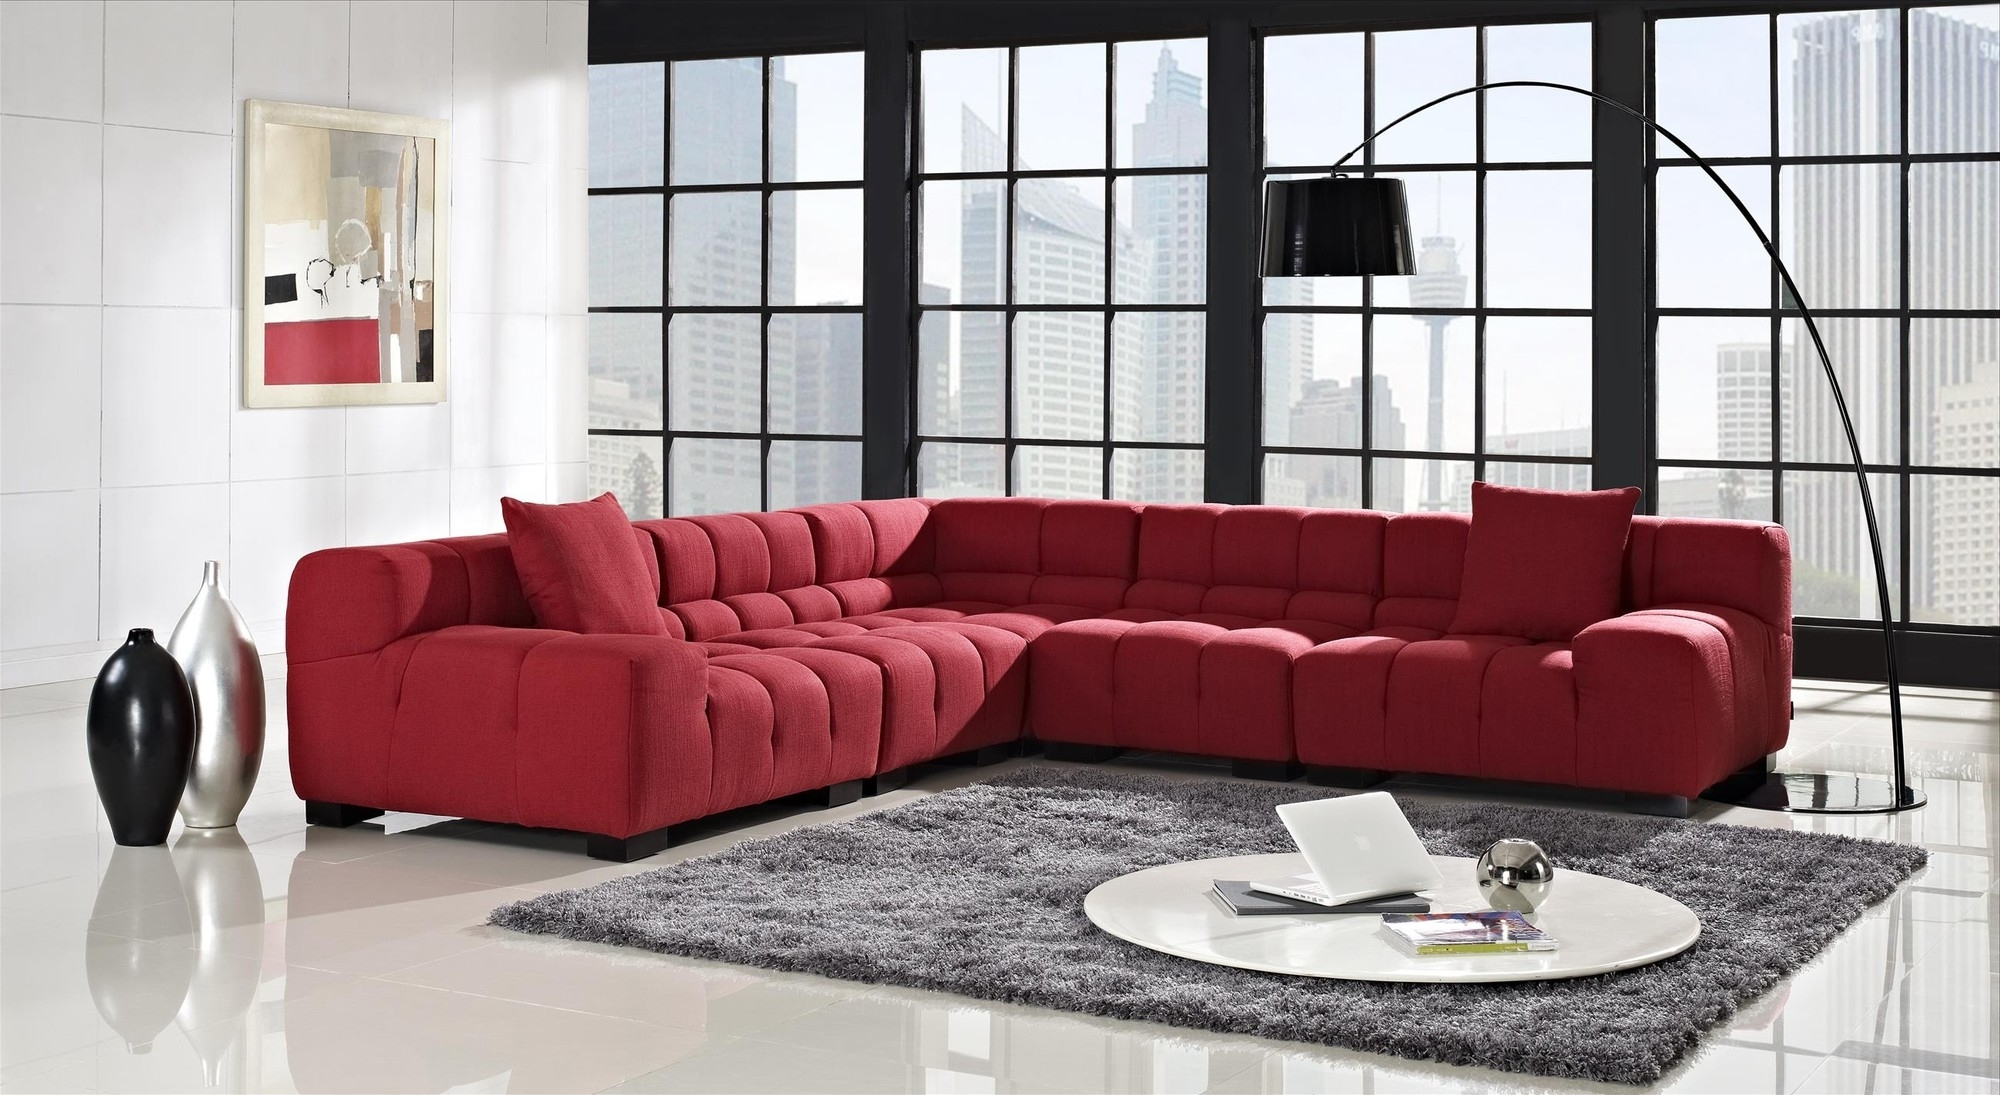 Small Modular Sectional Sofas With Regard To 2018 Furniture Awesome Modular Sectionals Sofas Hi Res Wallpaper Photos (View 16 of 20)